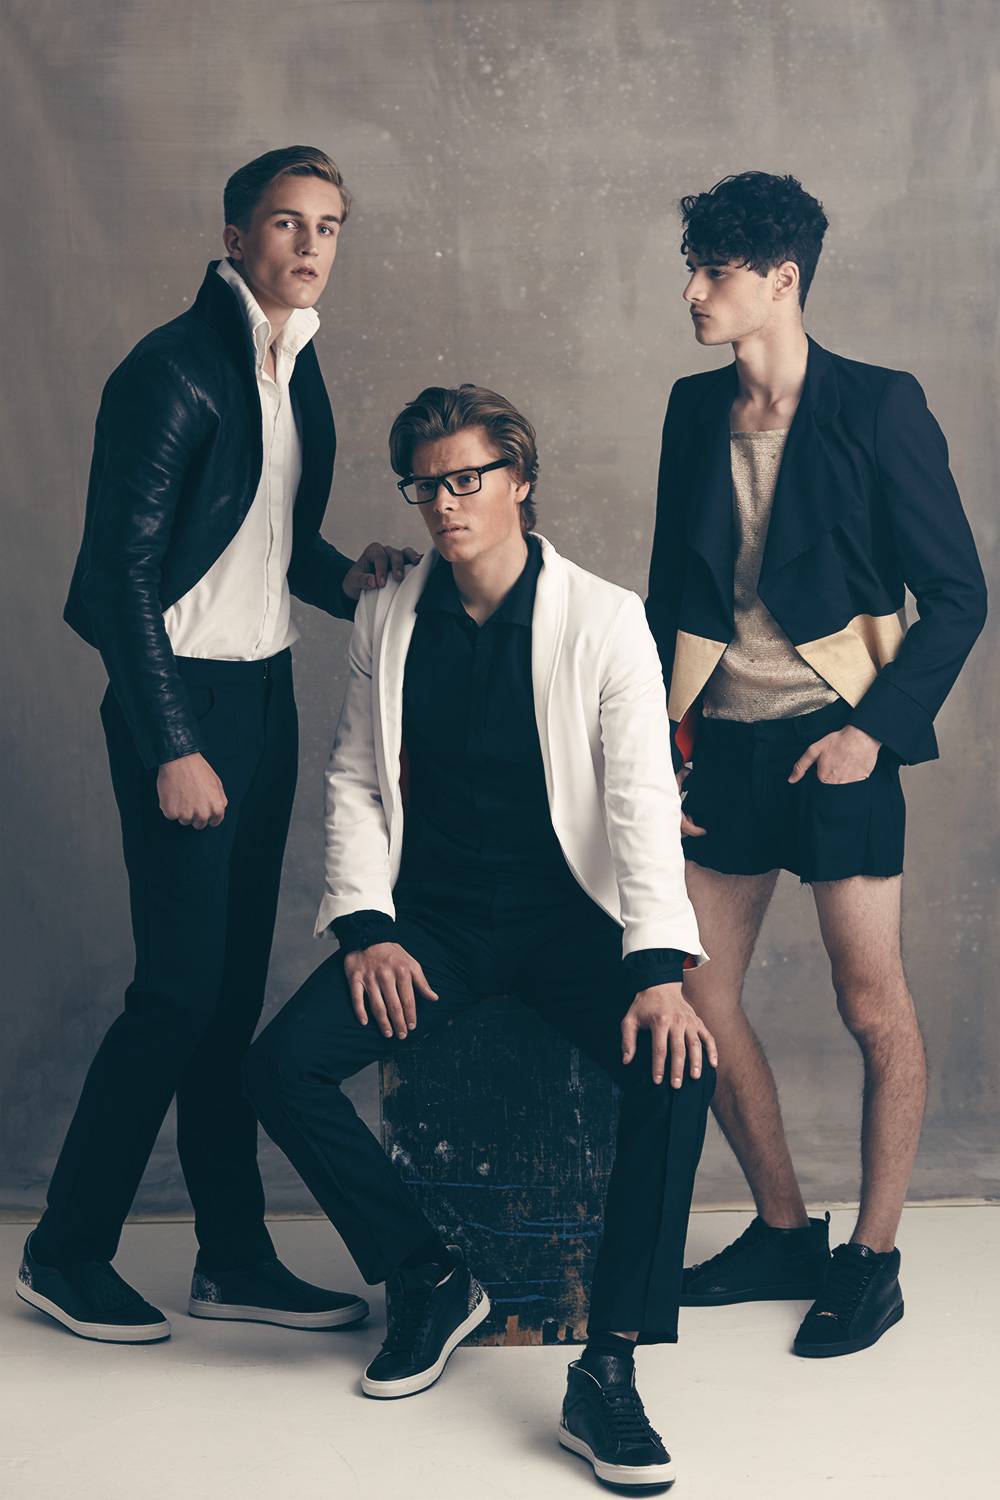 An exclusive featuring with stunning models and beautiful clothing here's the boys from New Generation Models all photographed by Robin Kamphuis. The models are David, Sander, Mike, Bidjoy, Ruben and Bram styled by Nathalie Alting Siberg in pieces from Allan Vos. Grooming by Kayleigh Lee-On.